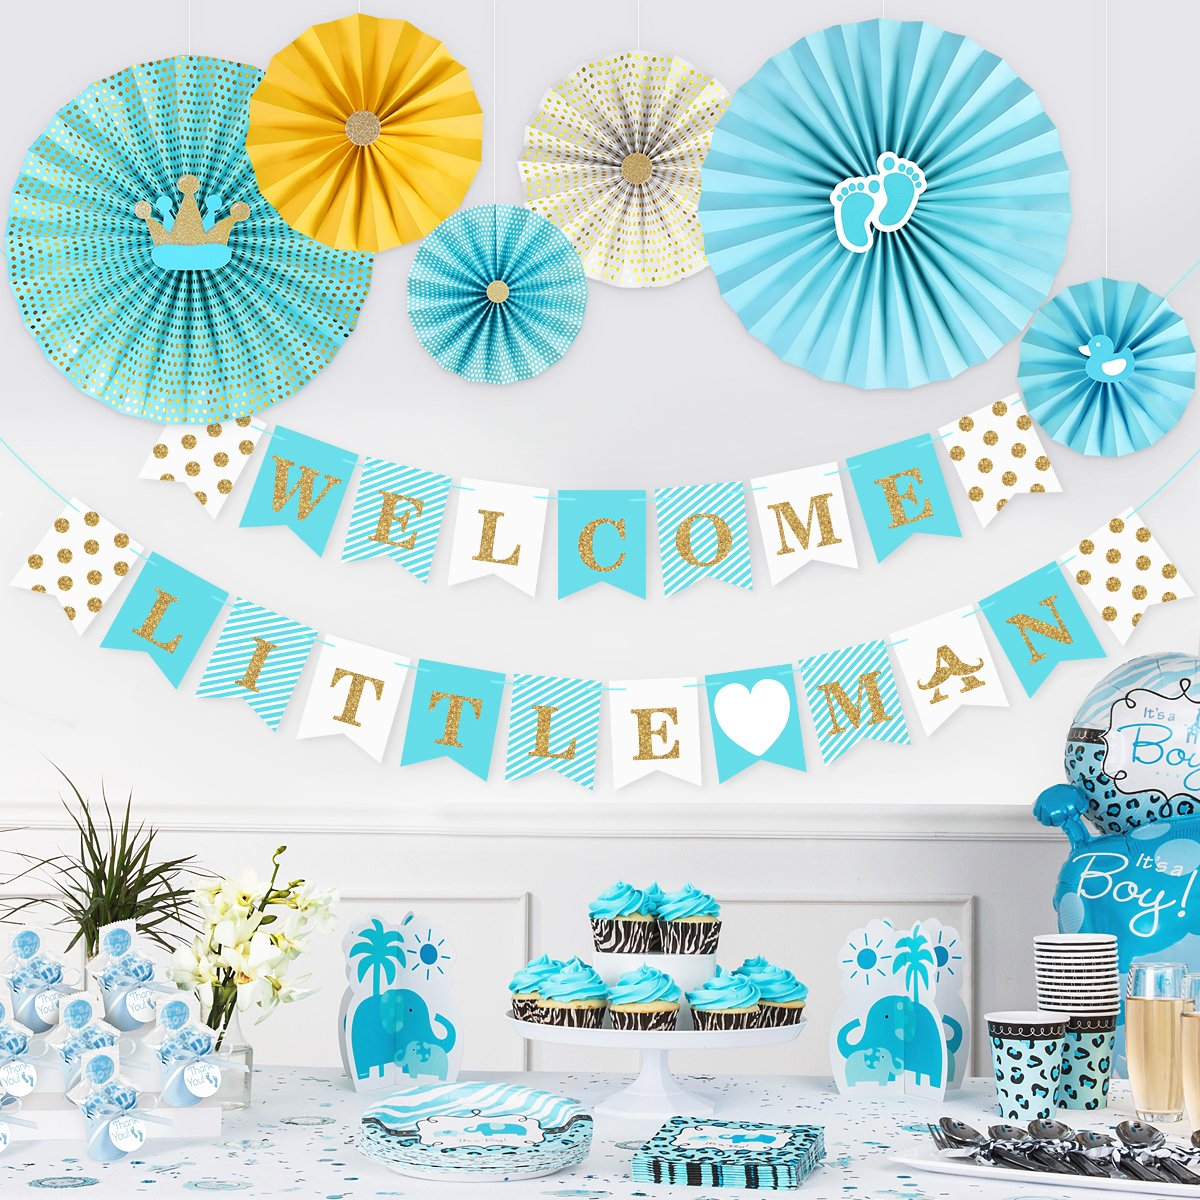 Unomor Baby Shower Decorations for Boys, Boy Baby Shower Decorations Sets Blue-Includes''WELCOME LITTLE MAN'' Glittering Letter Banner and 6 Styles Paper Fans Including Duck Dot Crown Footprint